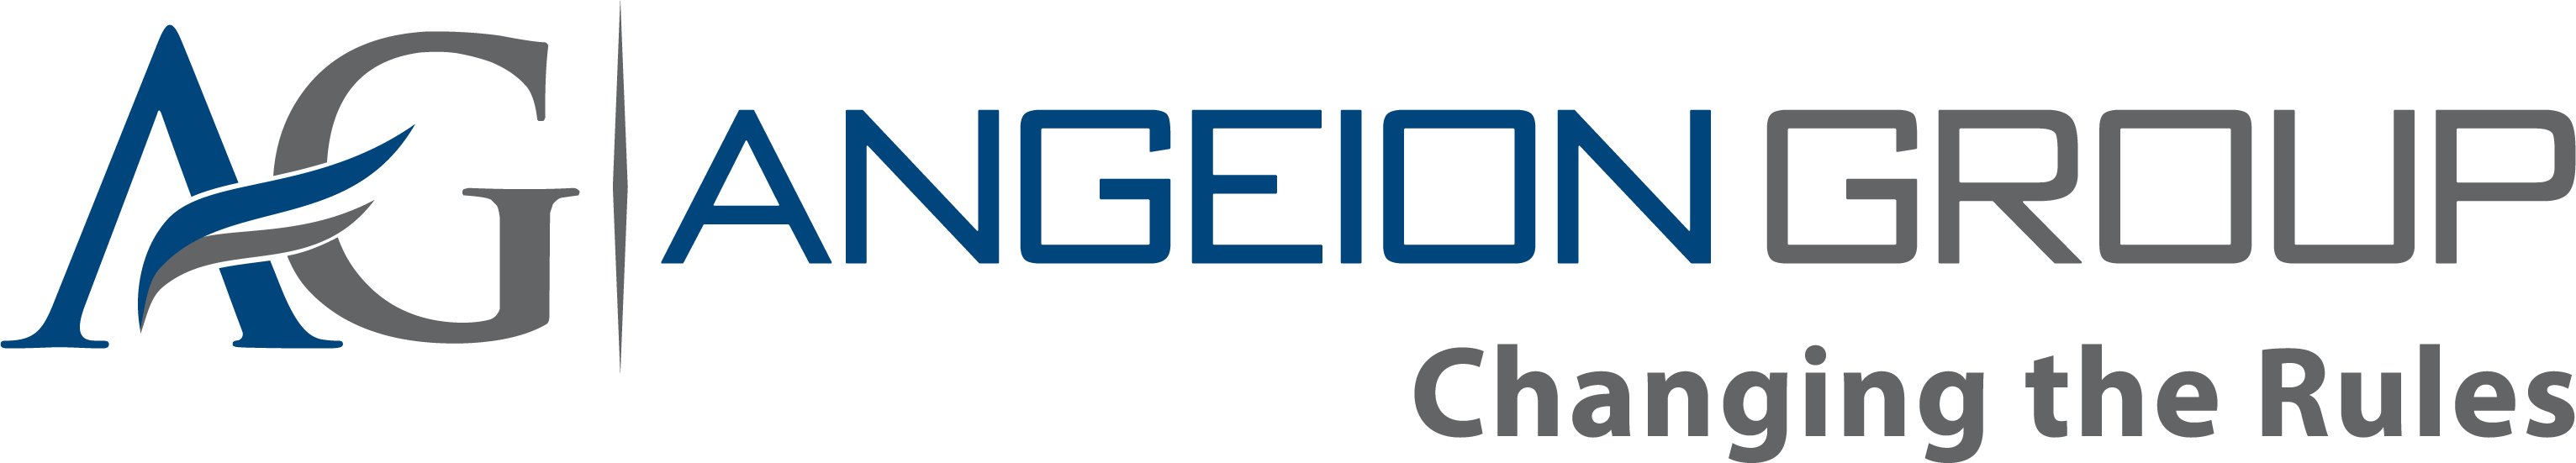 Angeion Group Logo